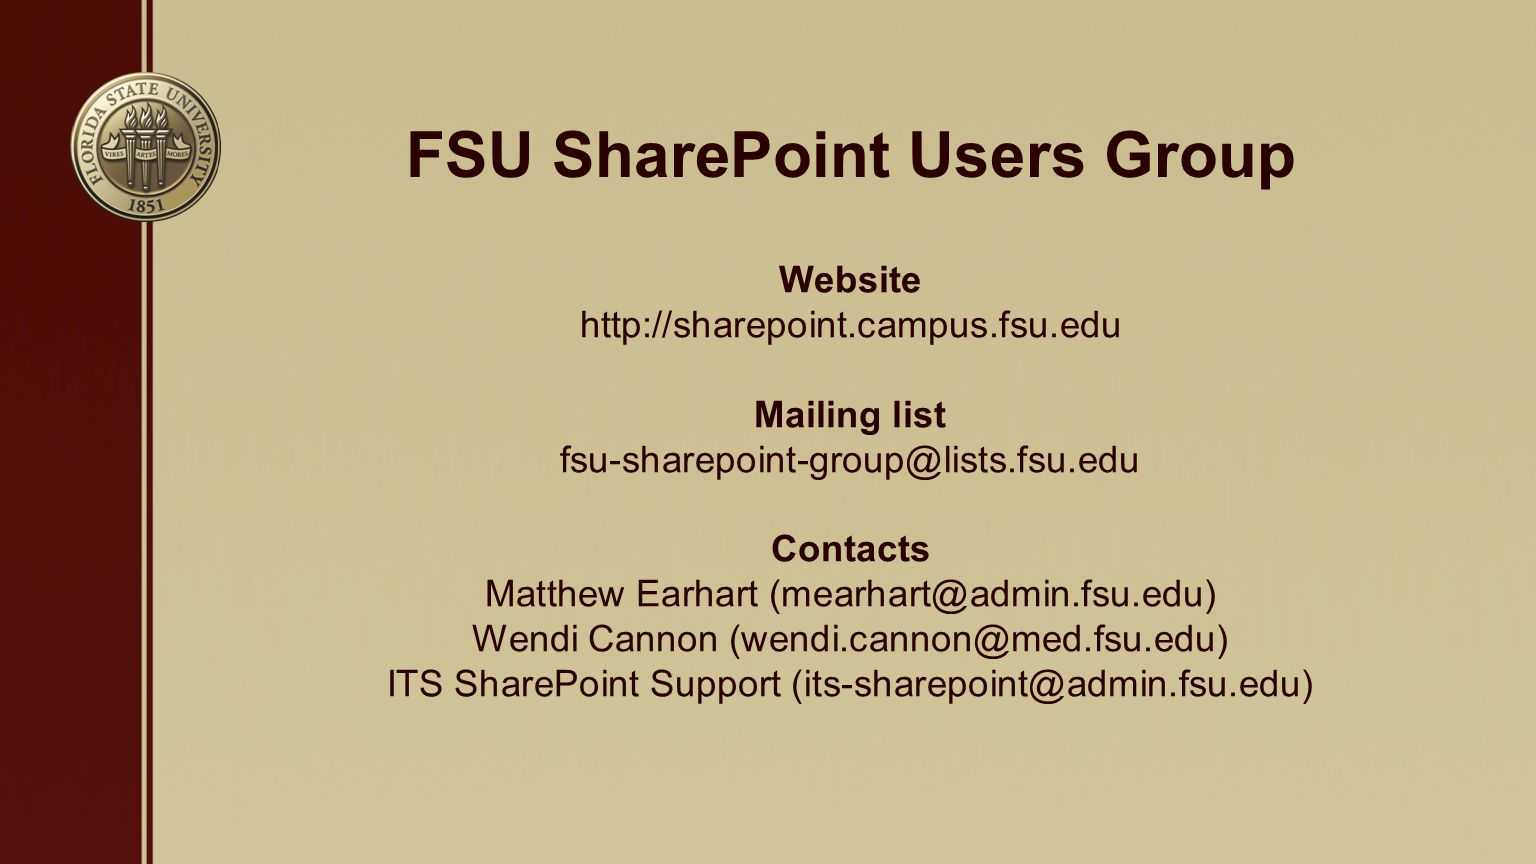 FSU SharePoint Users Group Website http://sharepoint.campus.fsu.edu Mailing list fsu-sharepoint-group@lists.fsu.edu Contacts Matthew Earhart (mearhart@admin.fsu.edu) Wendi Cannon (wendi.cannon@med.fsu.edu) ITS SharePoint Support (its-sharepoint@admin.fsu.edu)